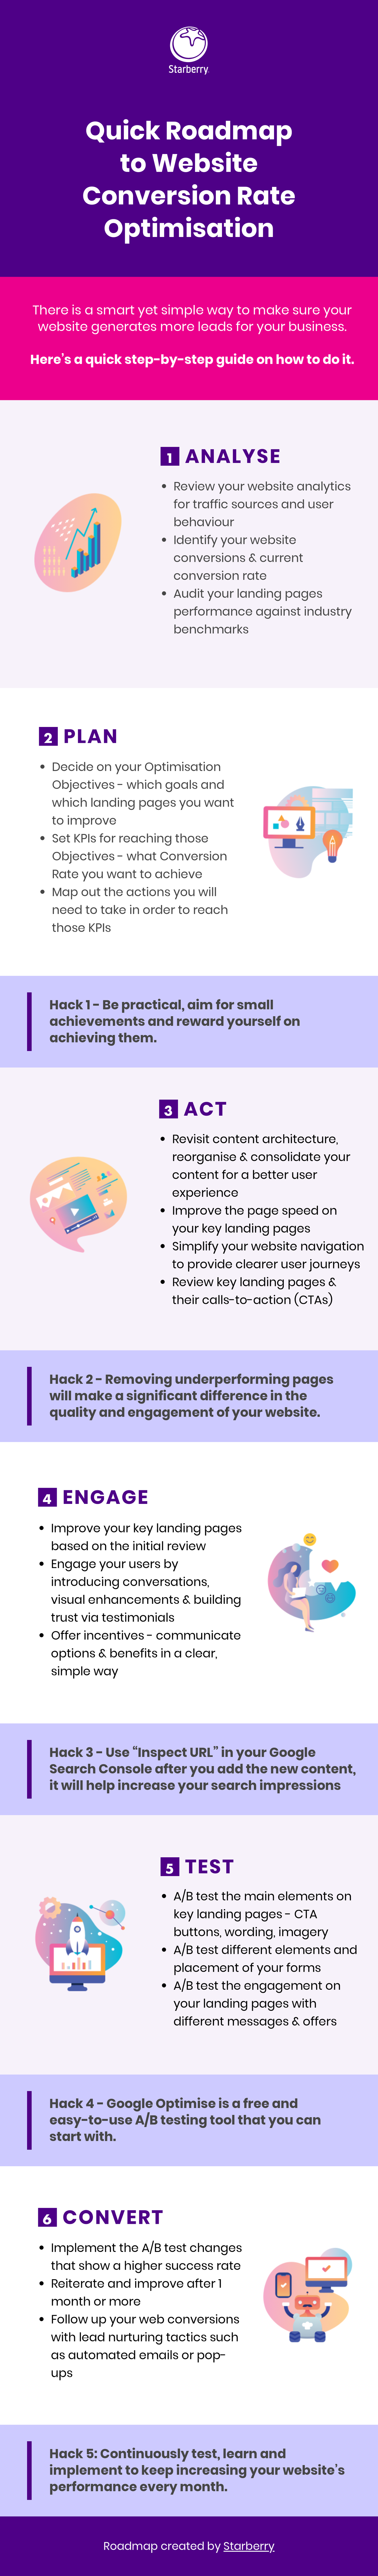 Roadmap to Successfully Boosting your Website Conversion Rate